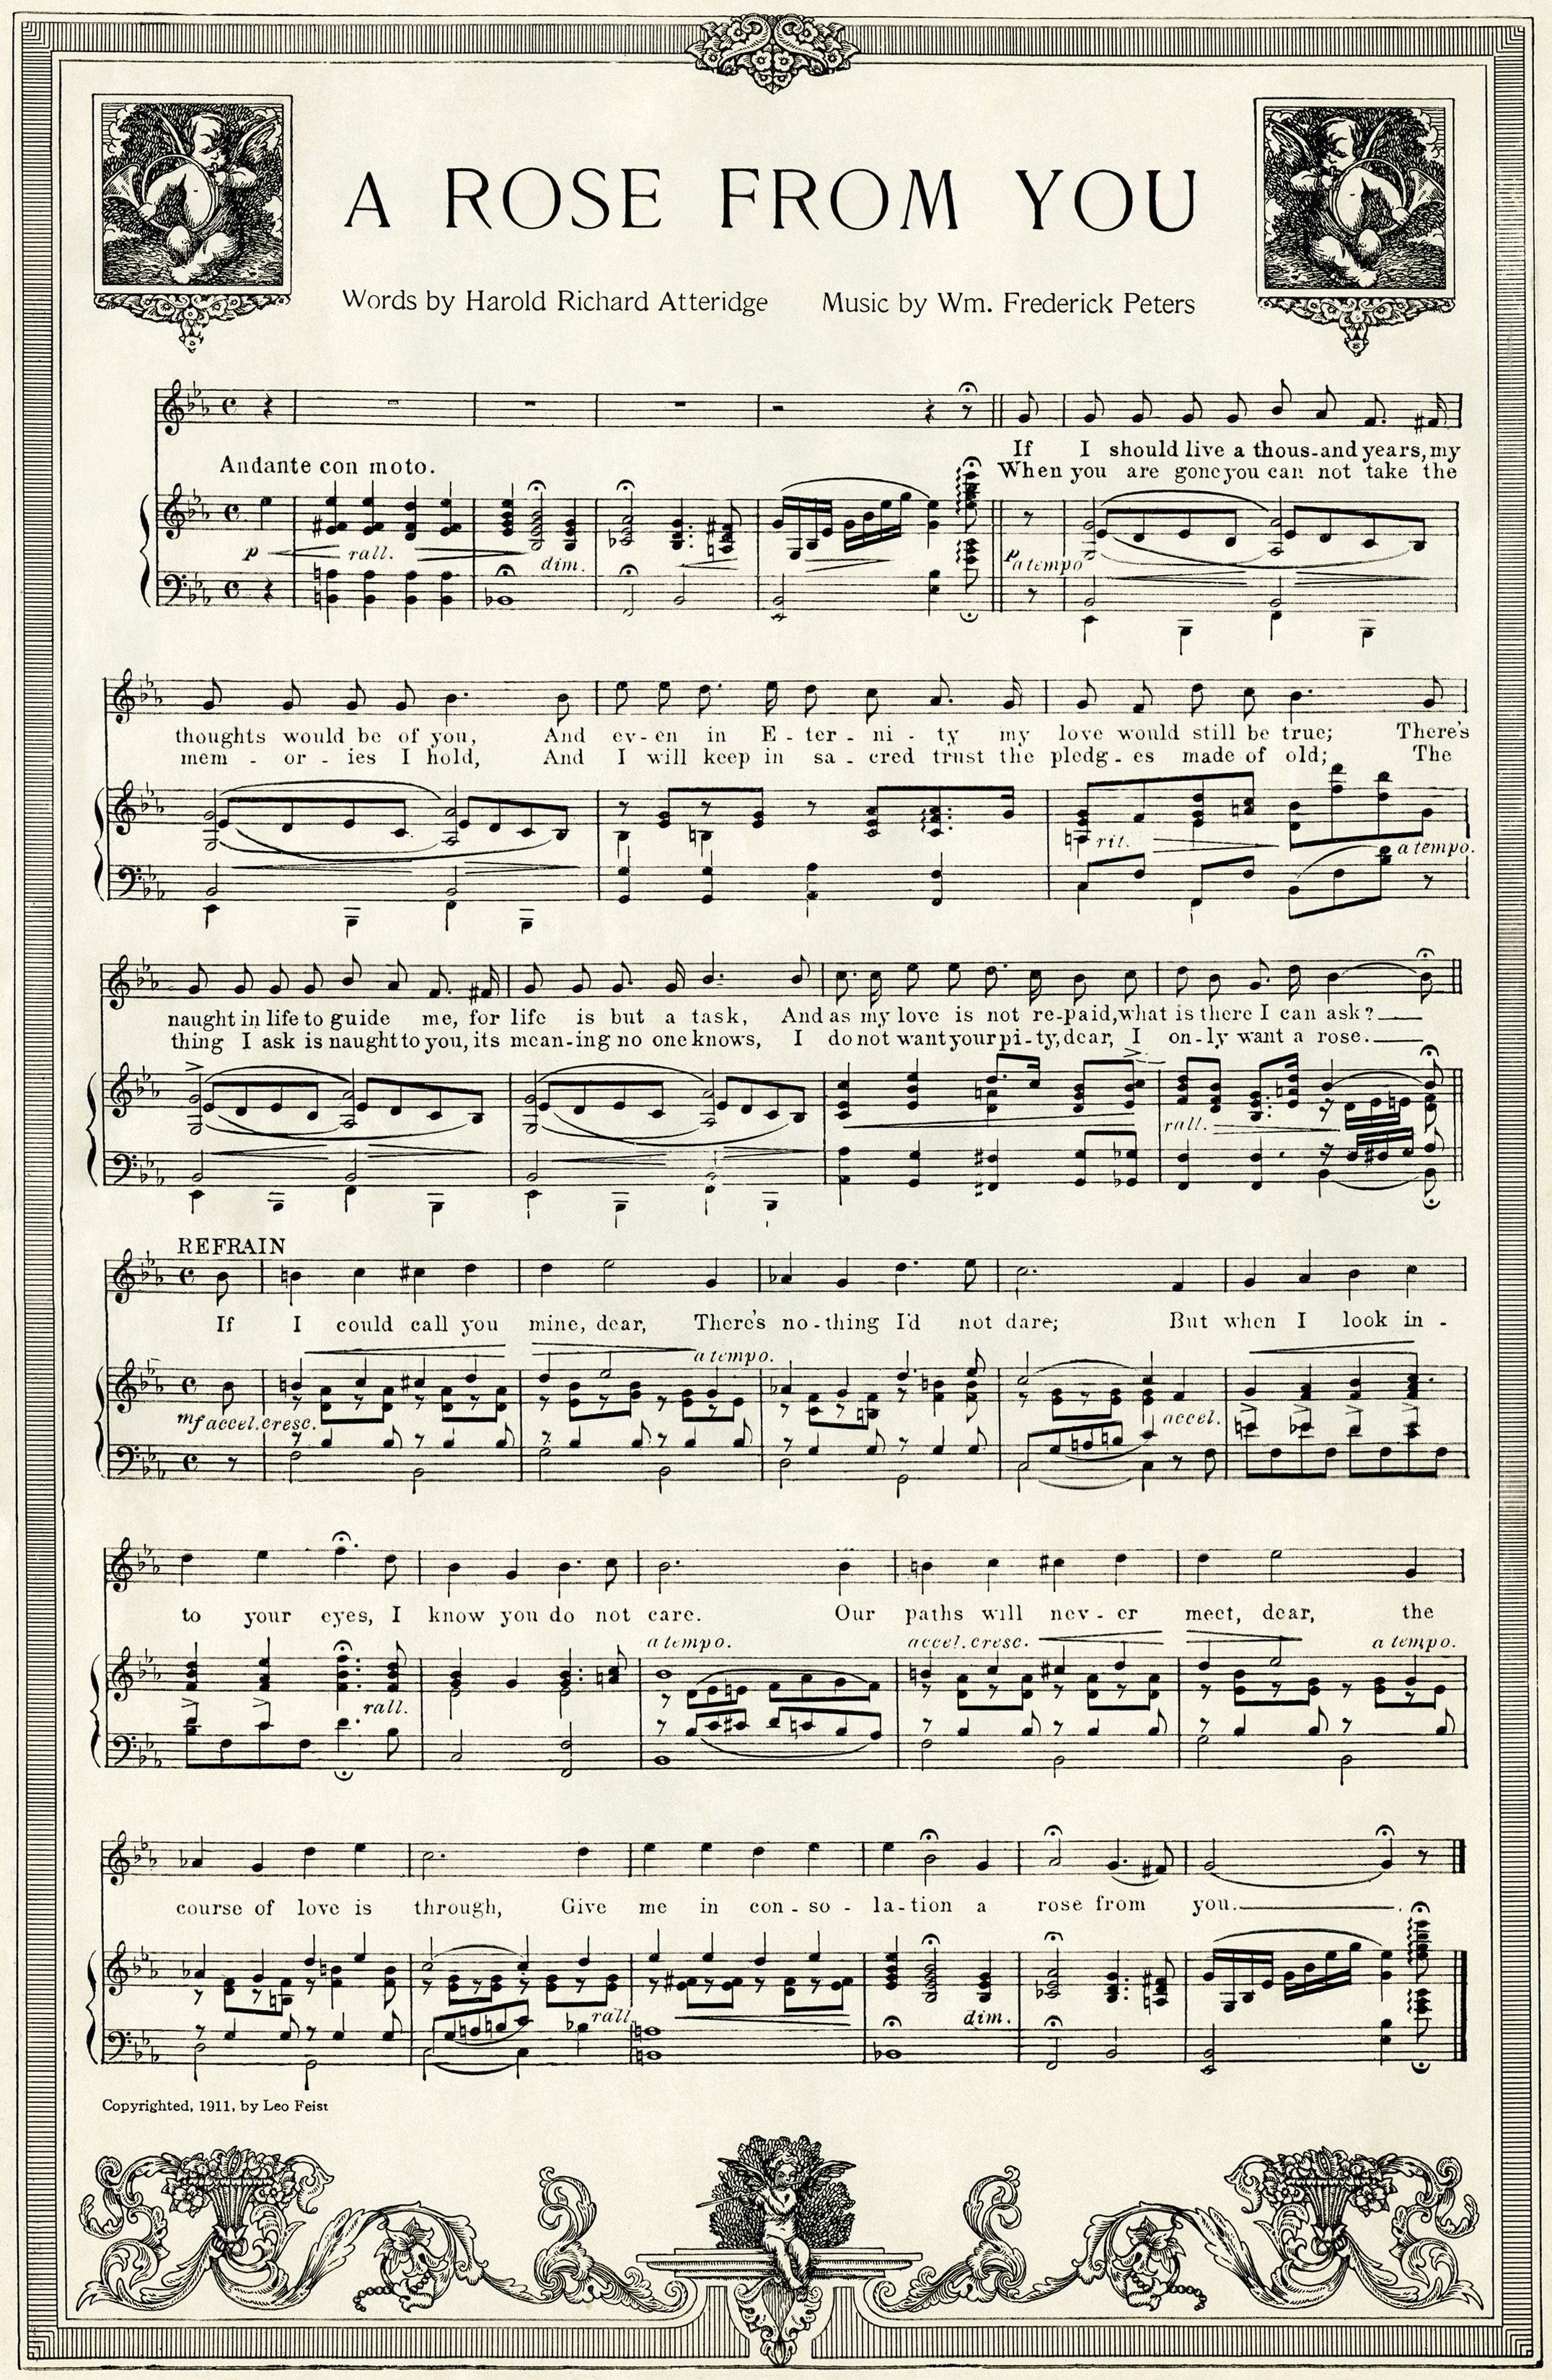 Free Vintage Image A Rose From You Sheet Music Old